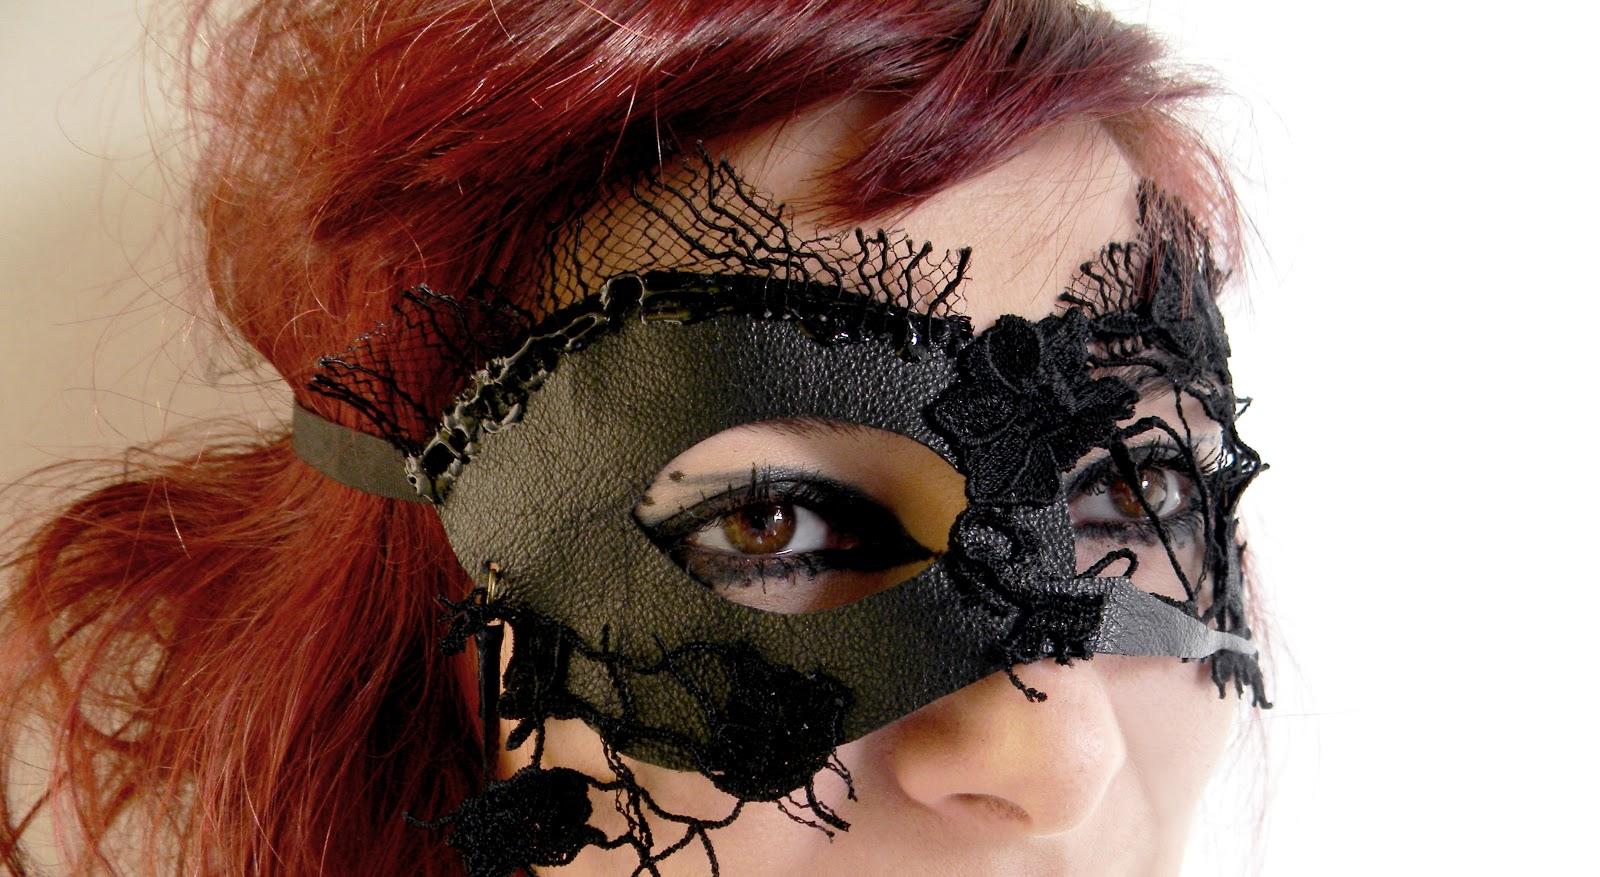 Handmade Leather Lace Mask Steampunk Gothic